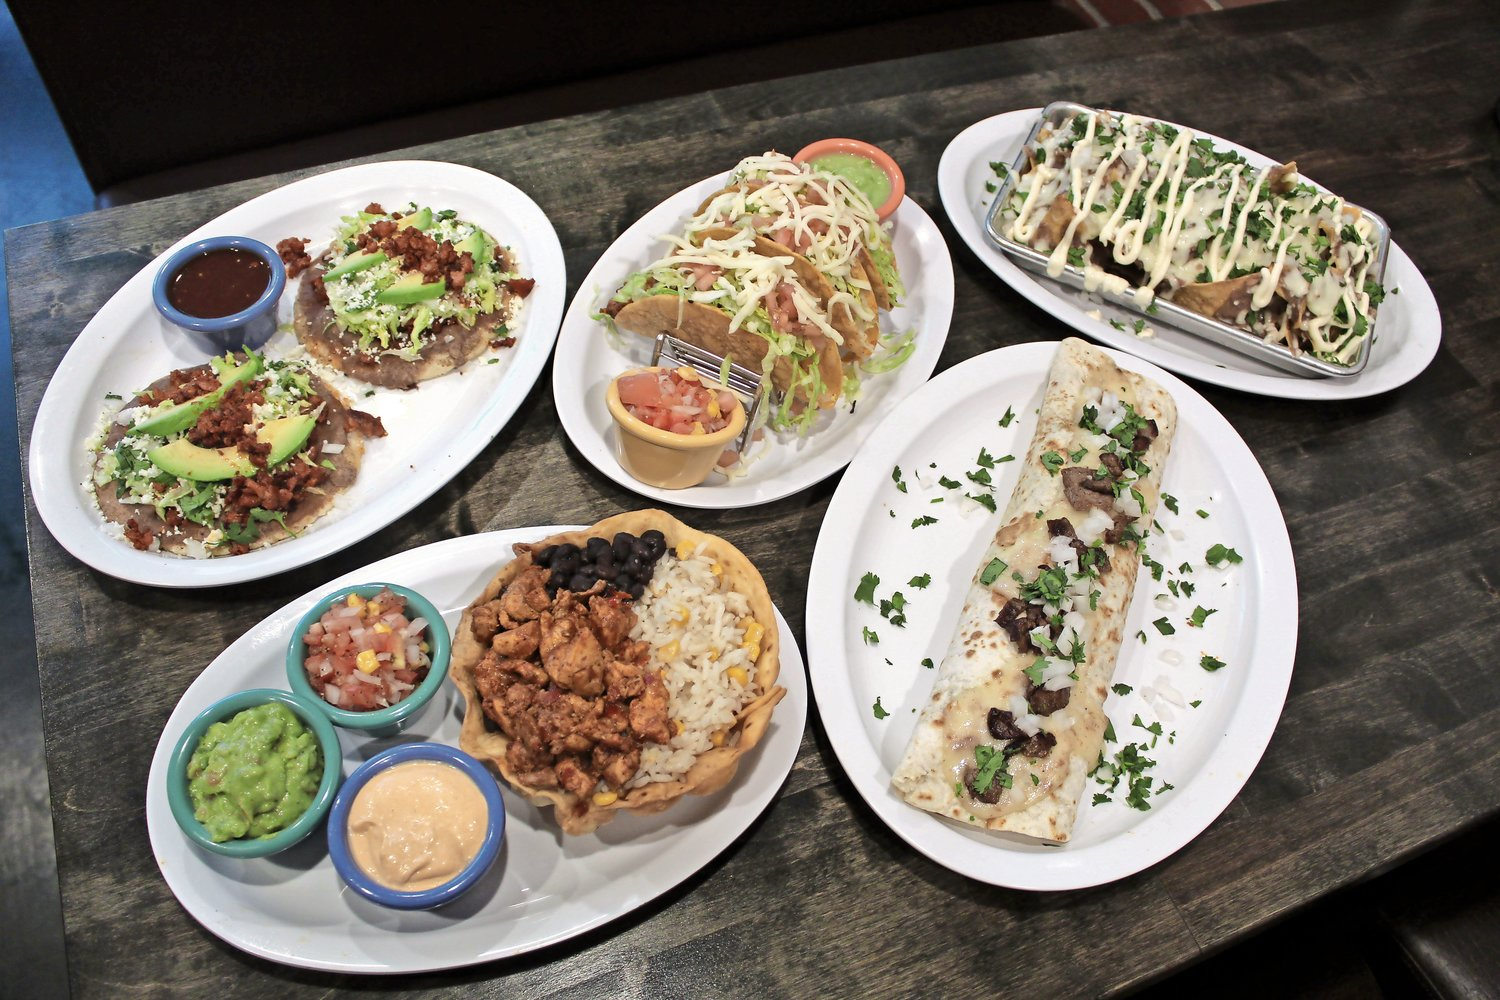 At Taco El Chingón in Bellmore, diners can savor authentic dishes direct from Mexico.